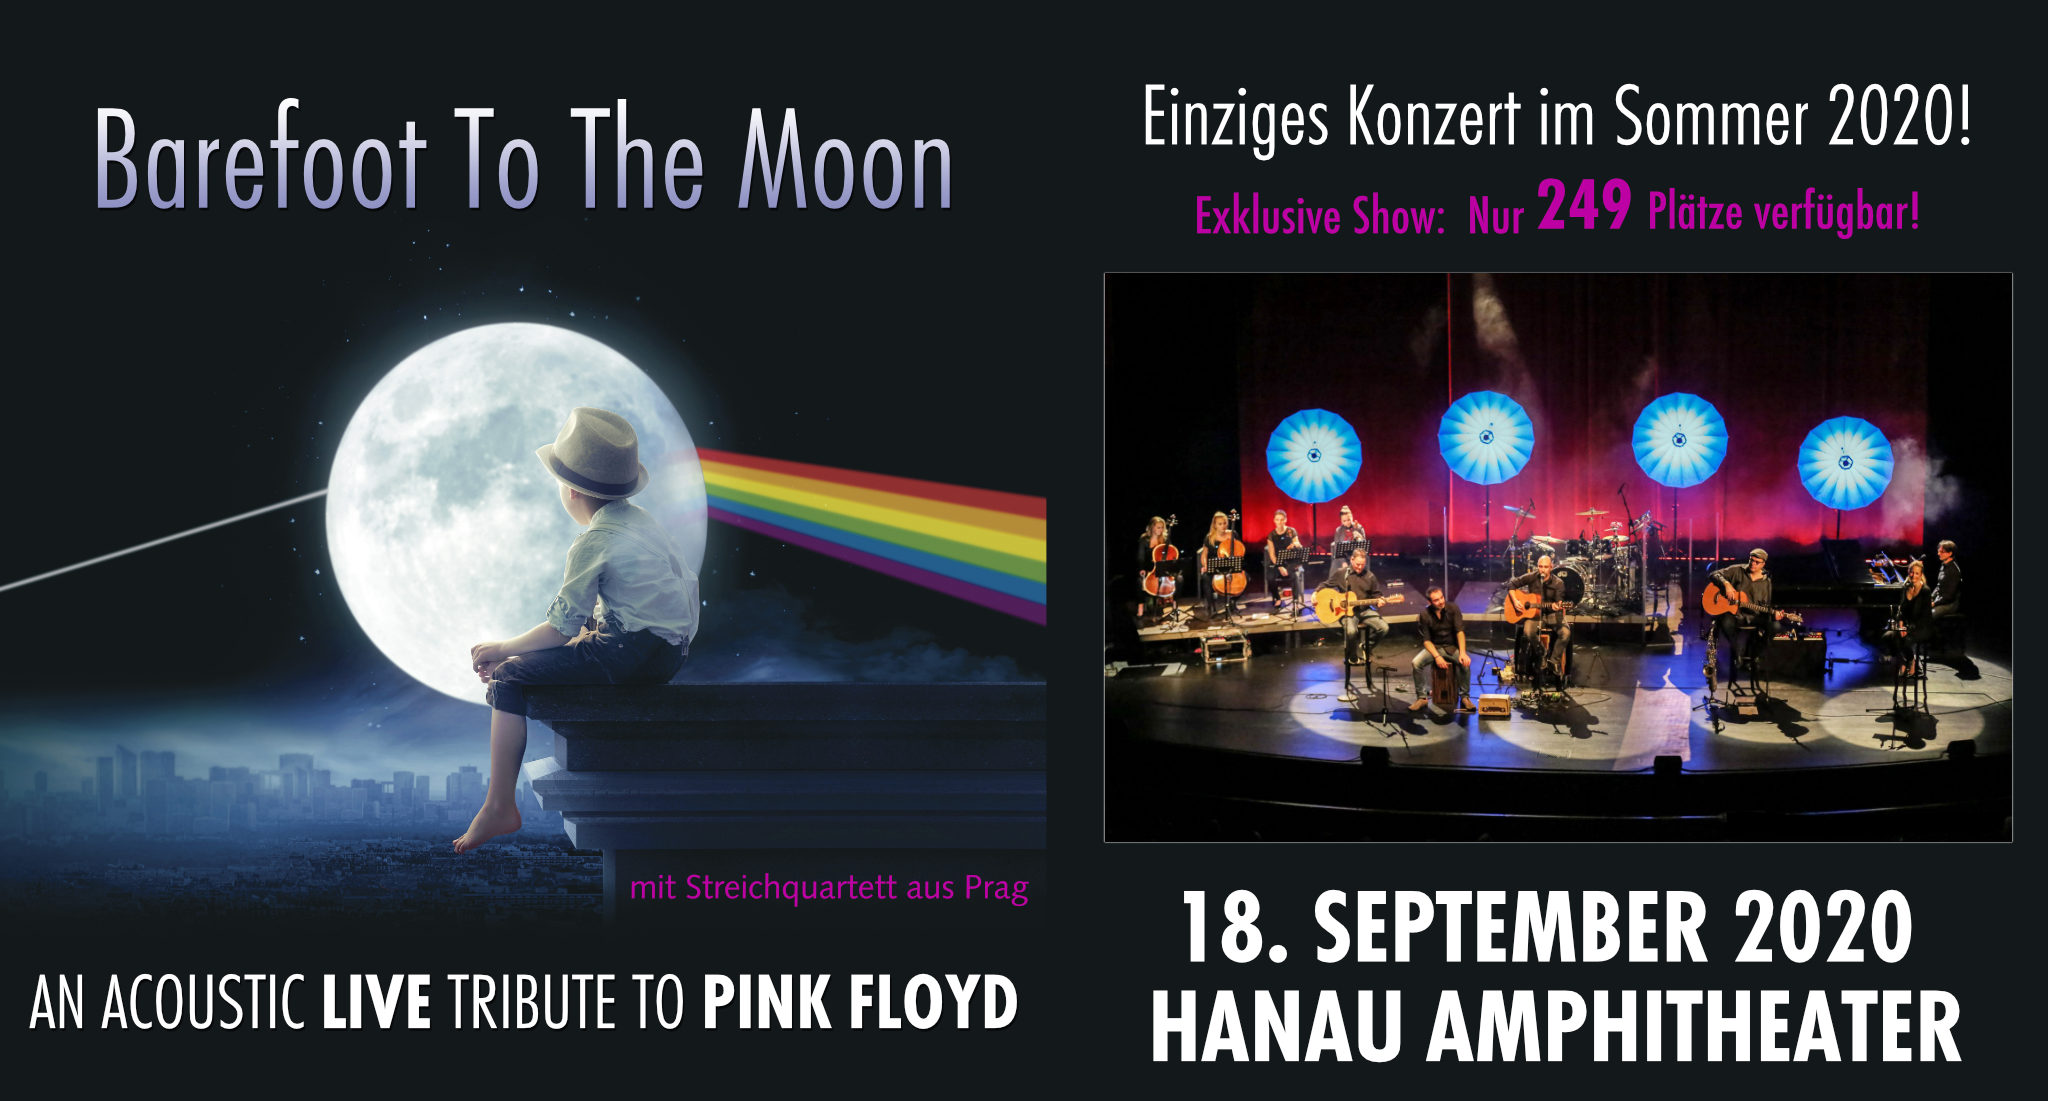 echoes Hanau Amphitheater 2020 Barefoot To The Moon Special Show